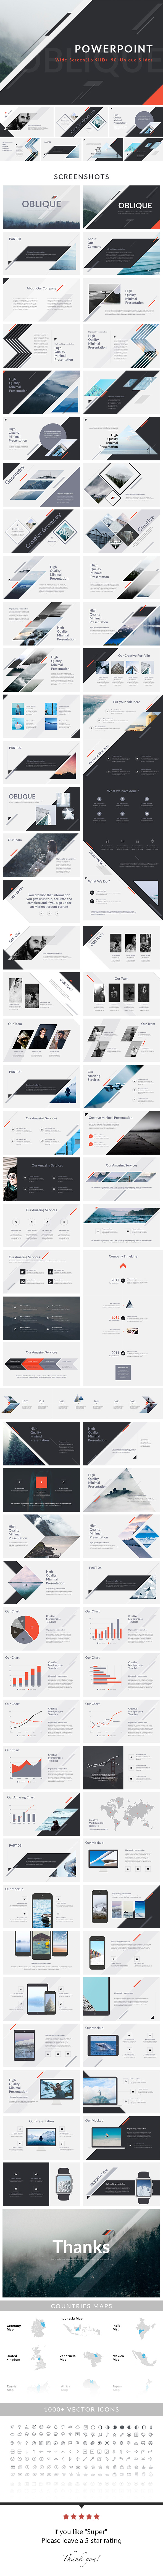 Oblique - PowerPoint Presentation Template - Abstract PowerPoint Templates